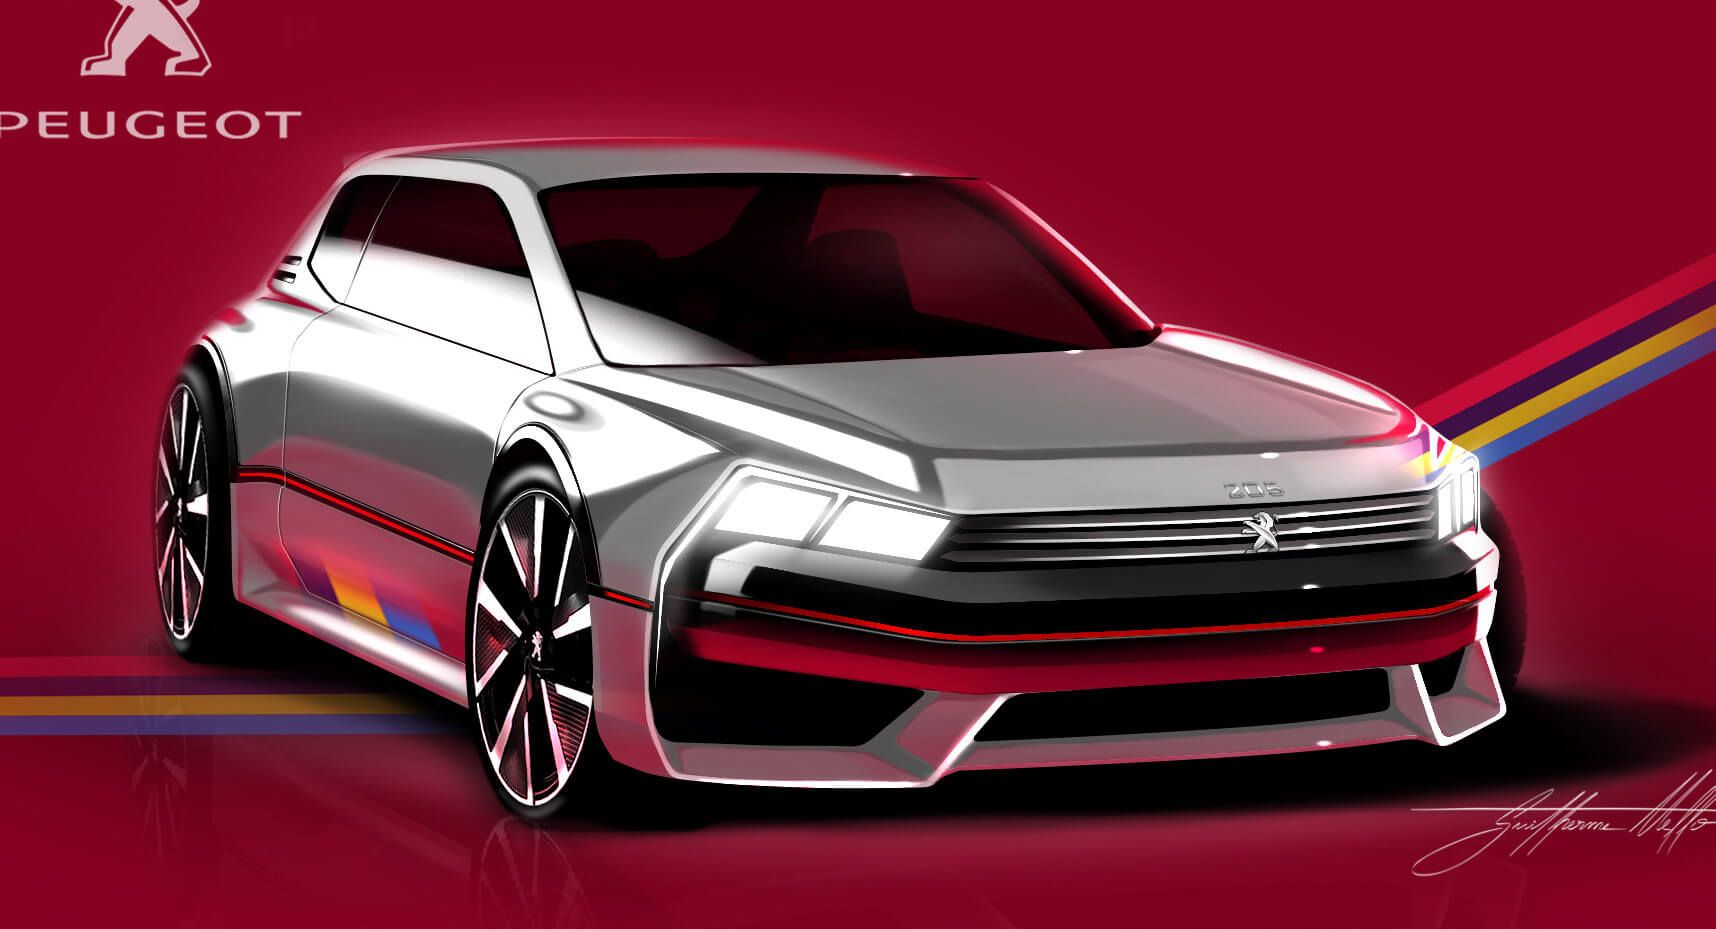 Peugeot Ceo Jean Philippe Imparato Said That They Re Working On The Gti Of The Future Peugeot Electric Cars Peugeot Bike